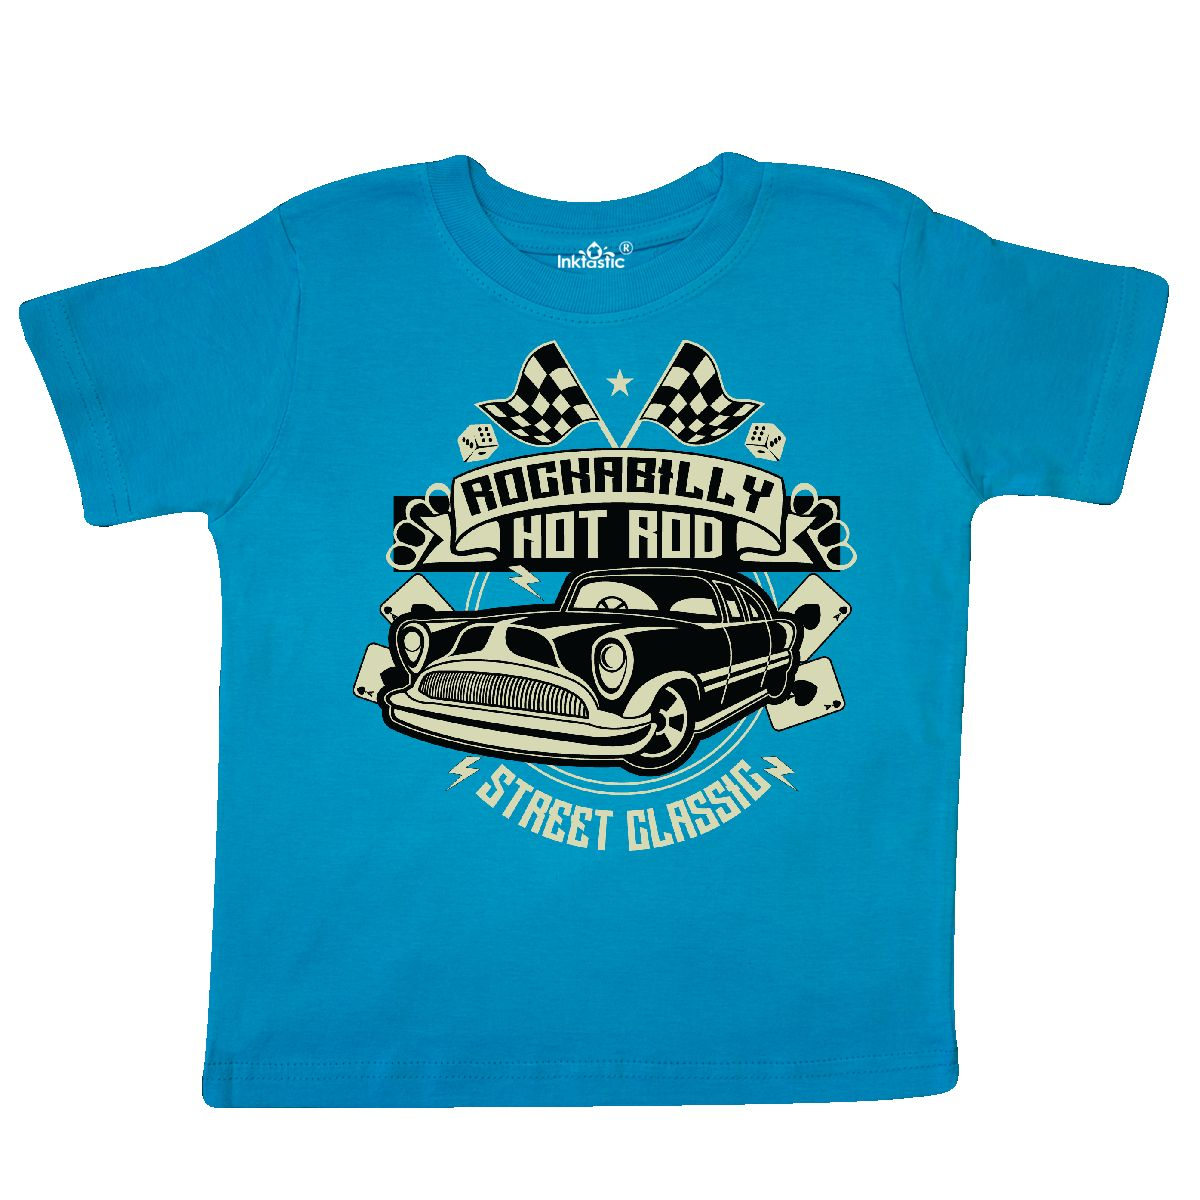 Inktastic-Rockabilly-Hotrod-Toddler-T-Shirt-Hot-Rod-Vintage-Car-Racing-Street thumbnail 7